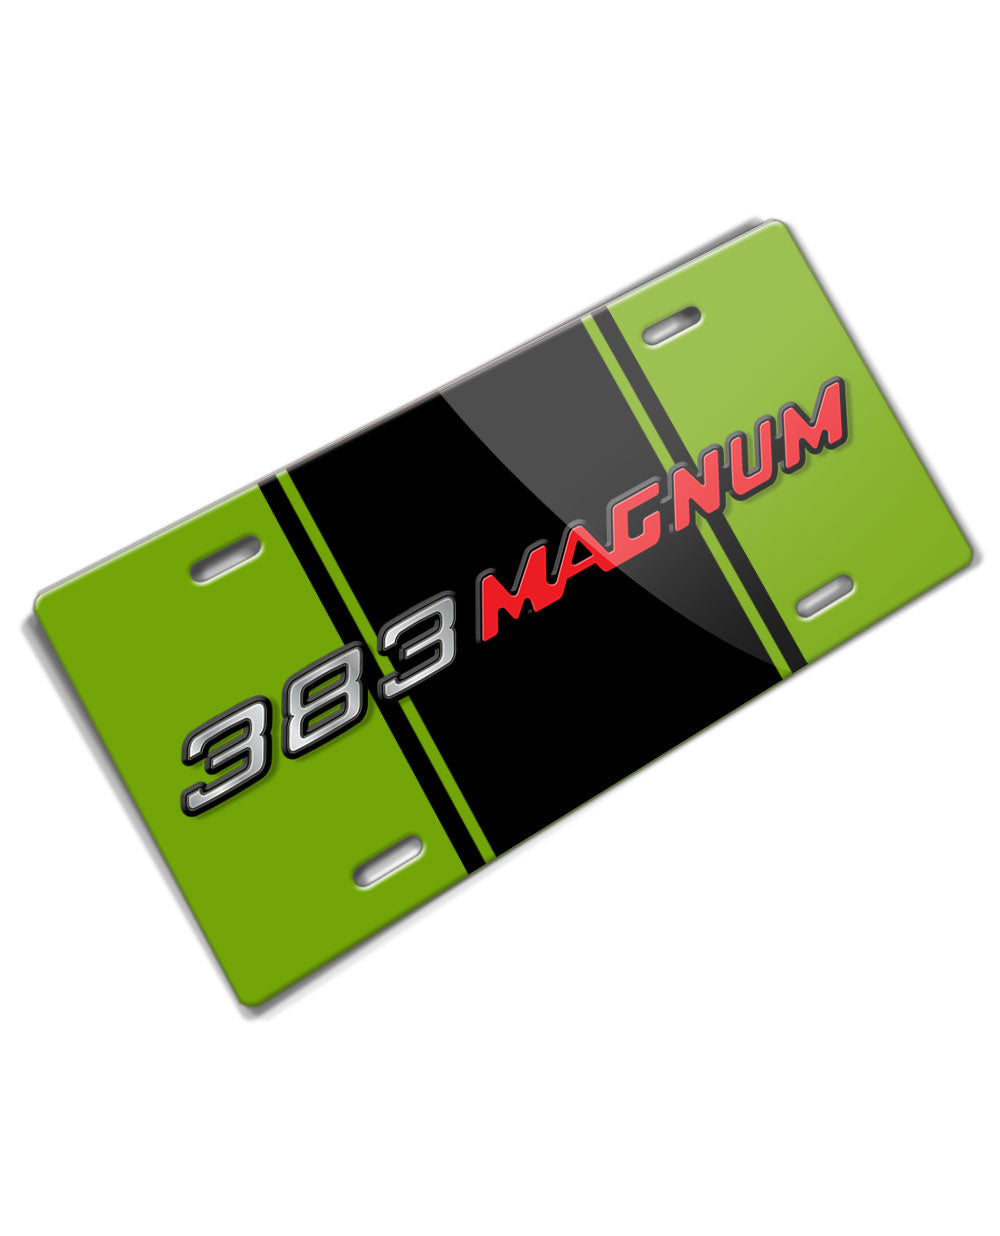 Dodge 383 Magnum Emblem Novelty License Plate